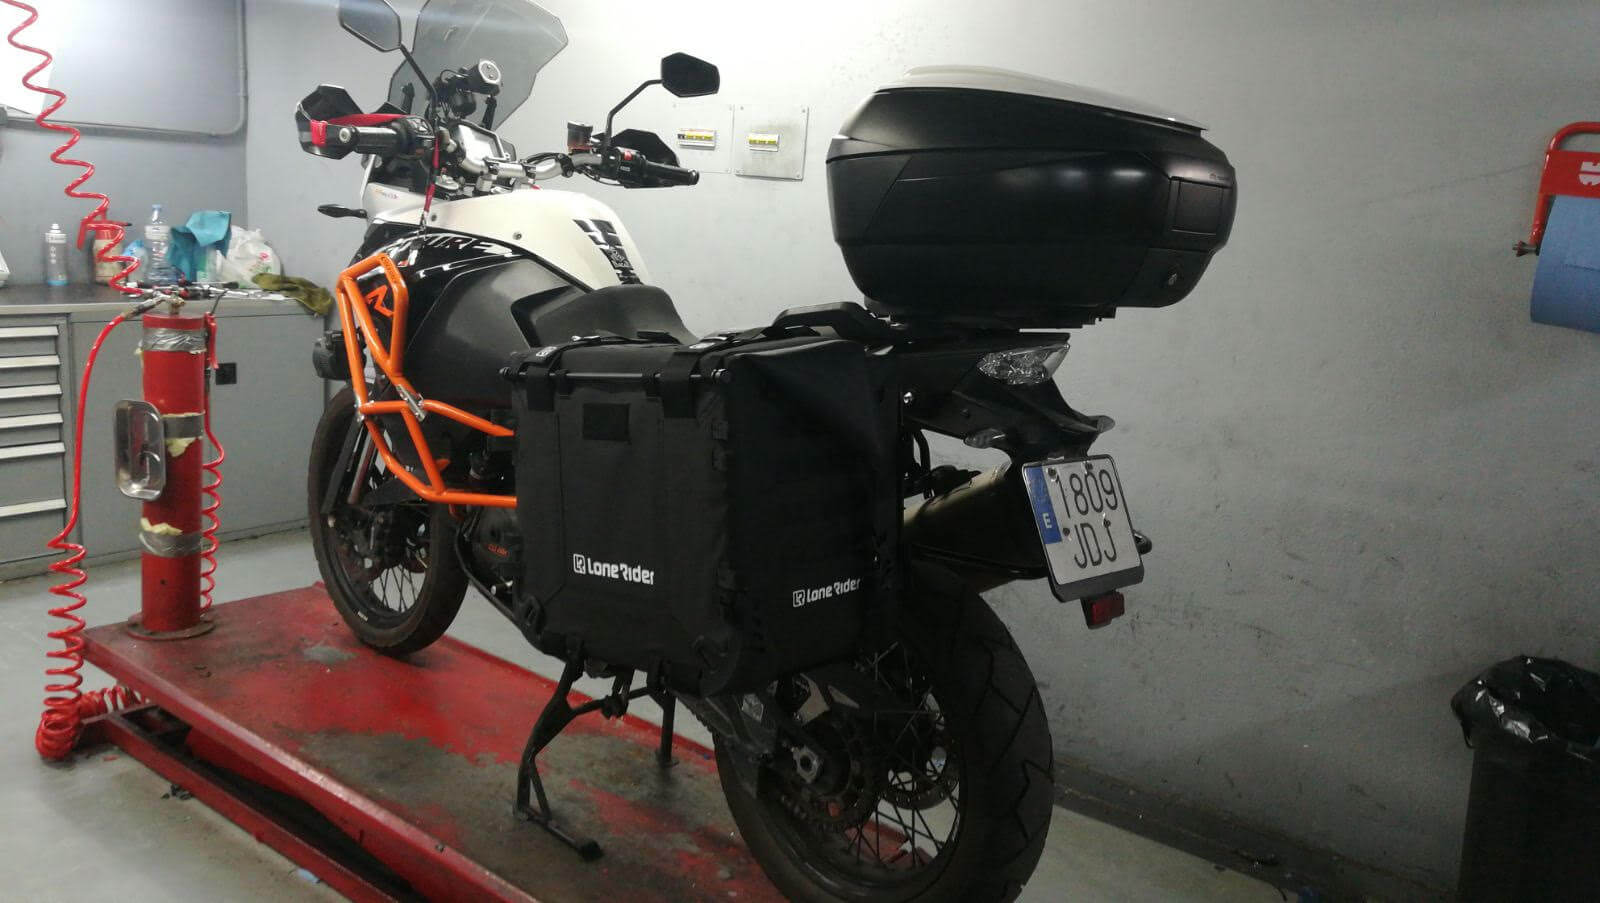 Lone Rider Motorcycle Bags MotoBags mounted on Ktm 1190 adventure R